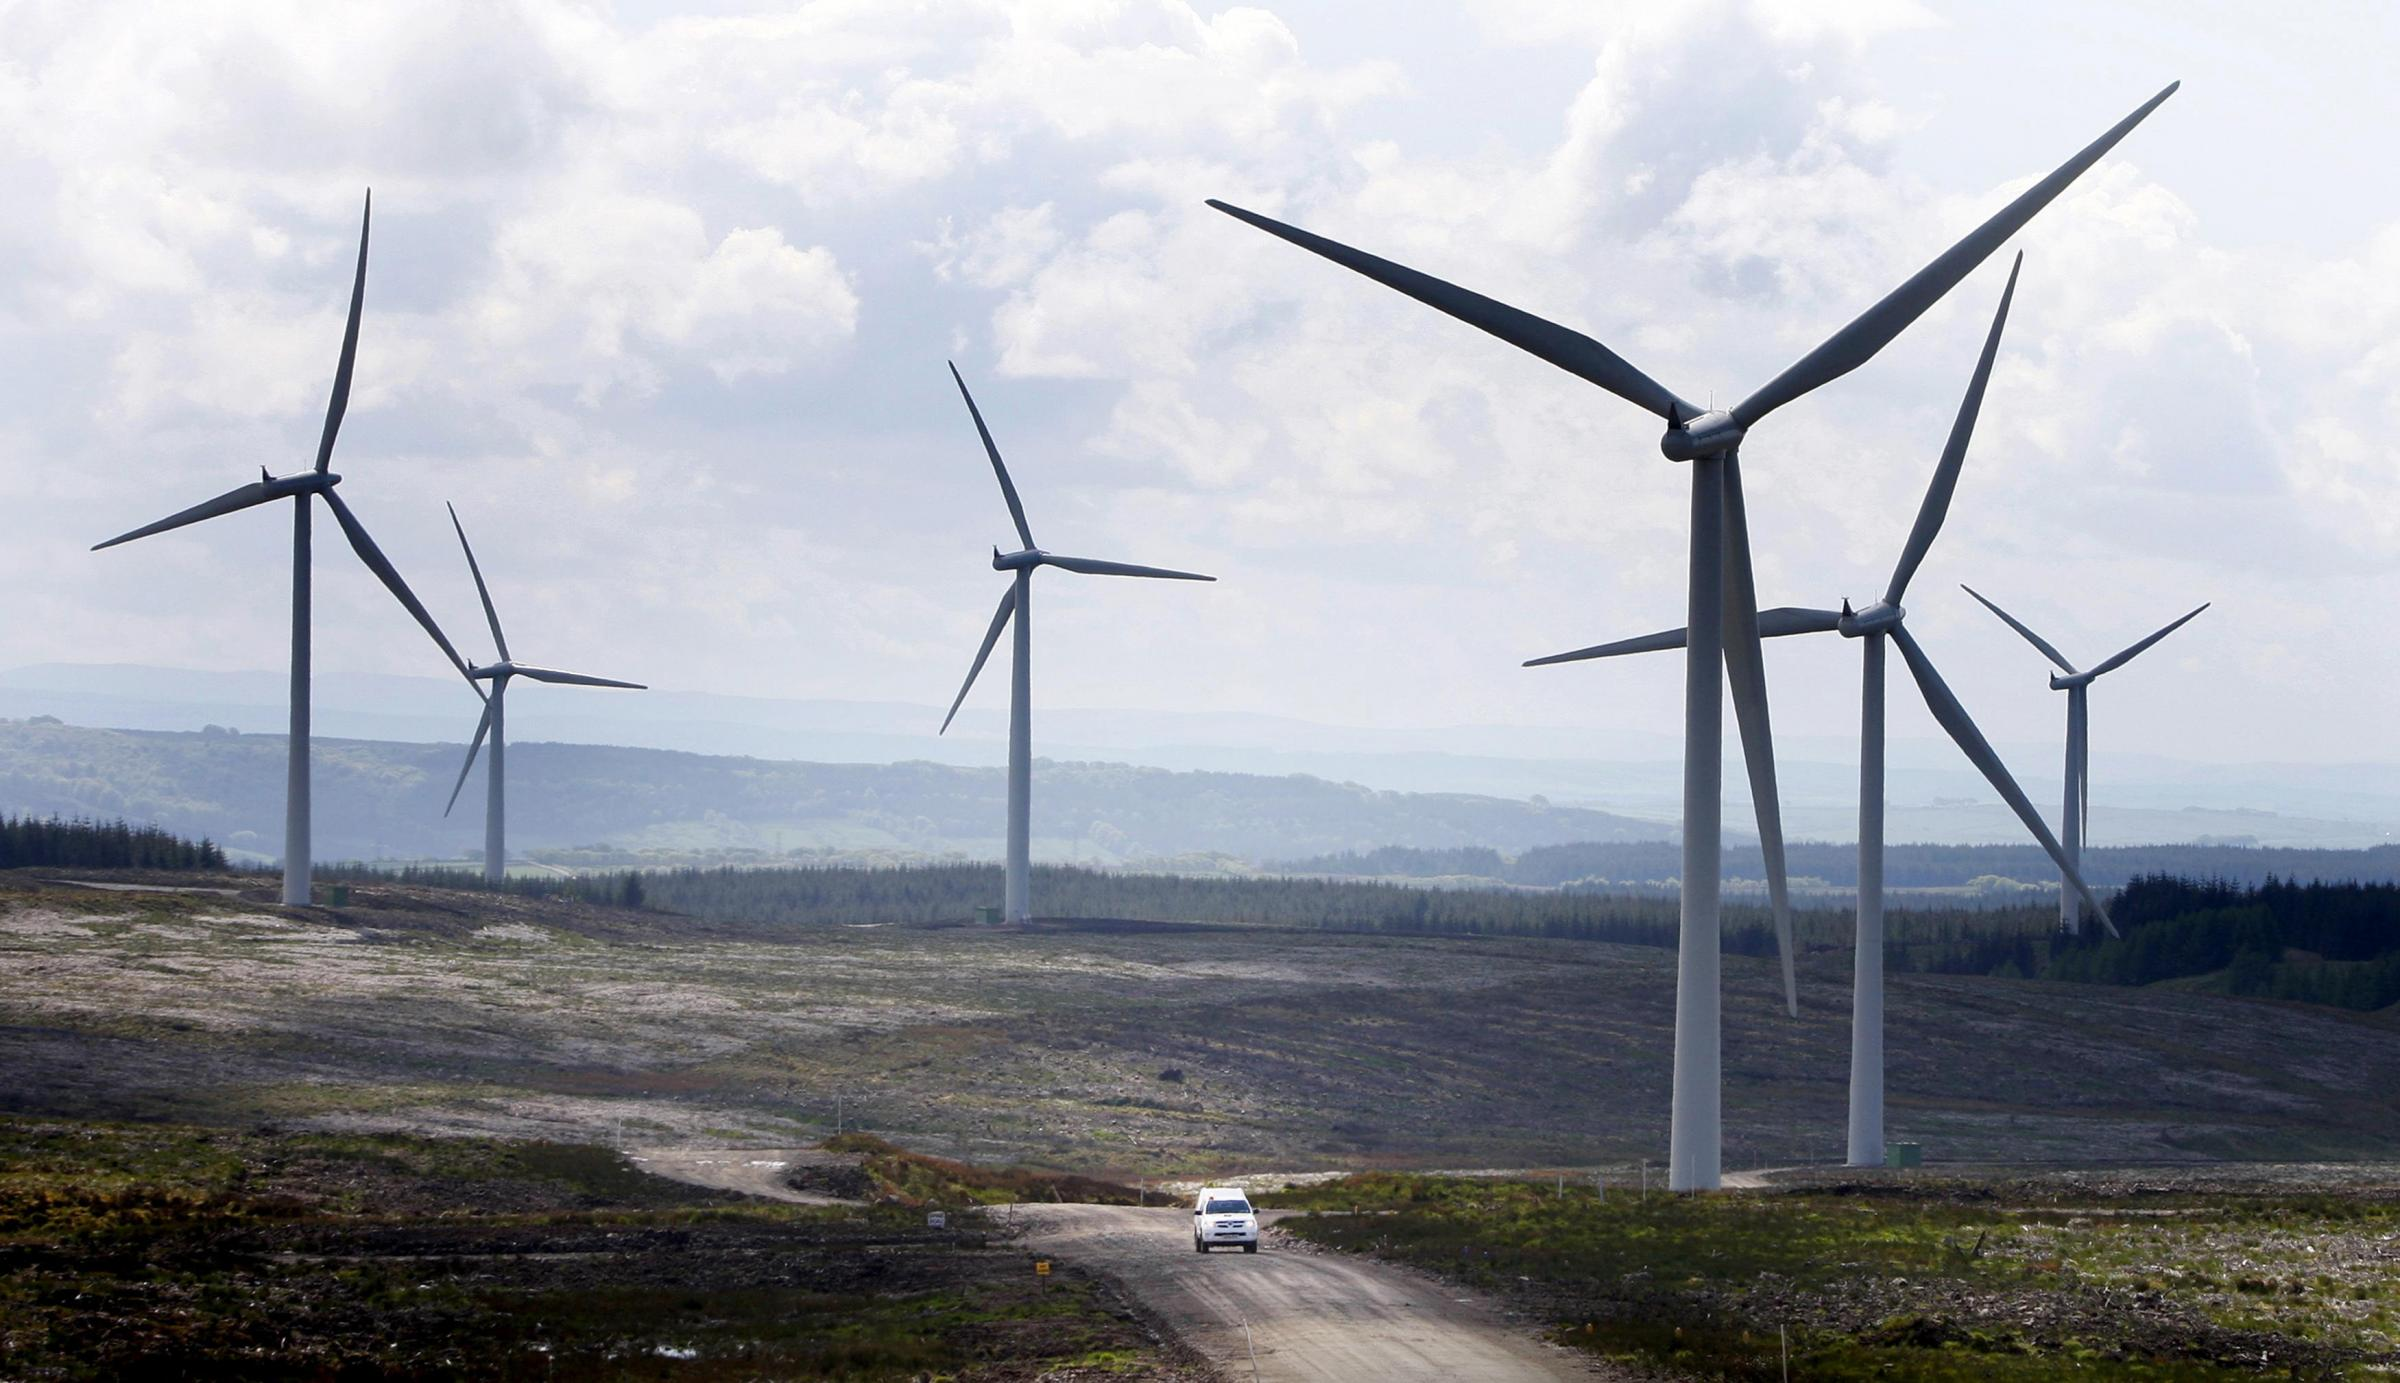 The green energy debate: are wind farms really worth it?